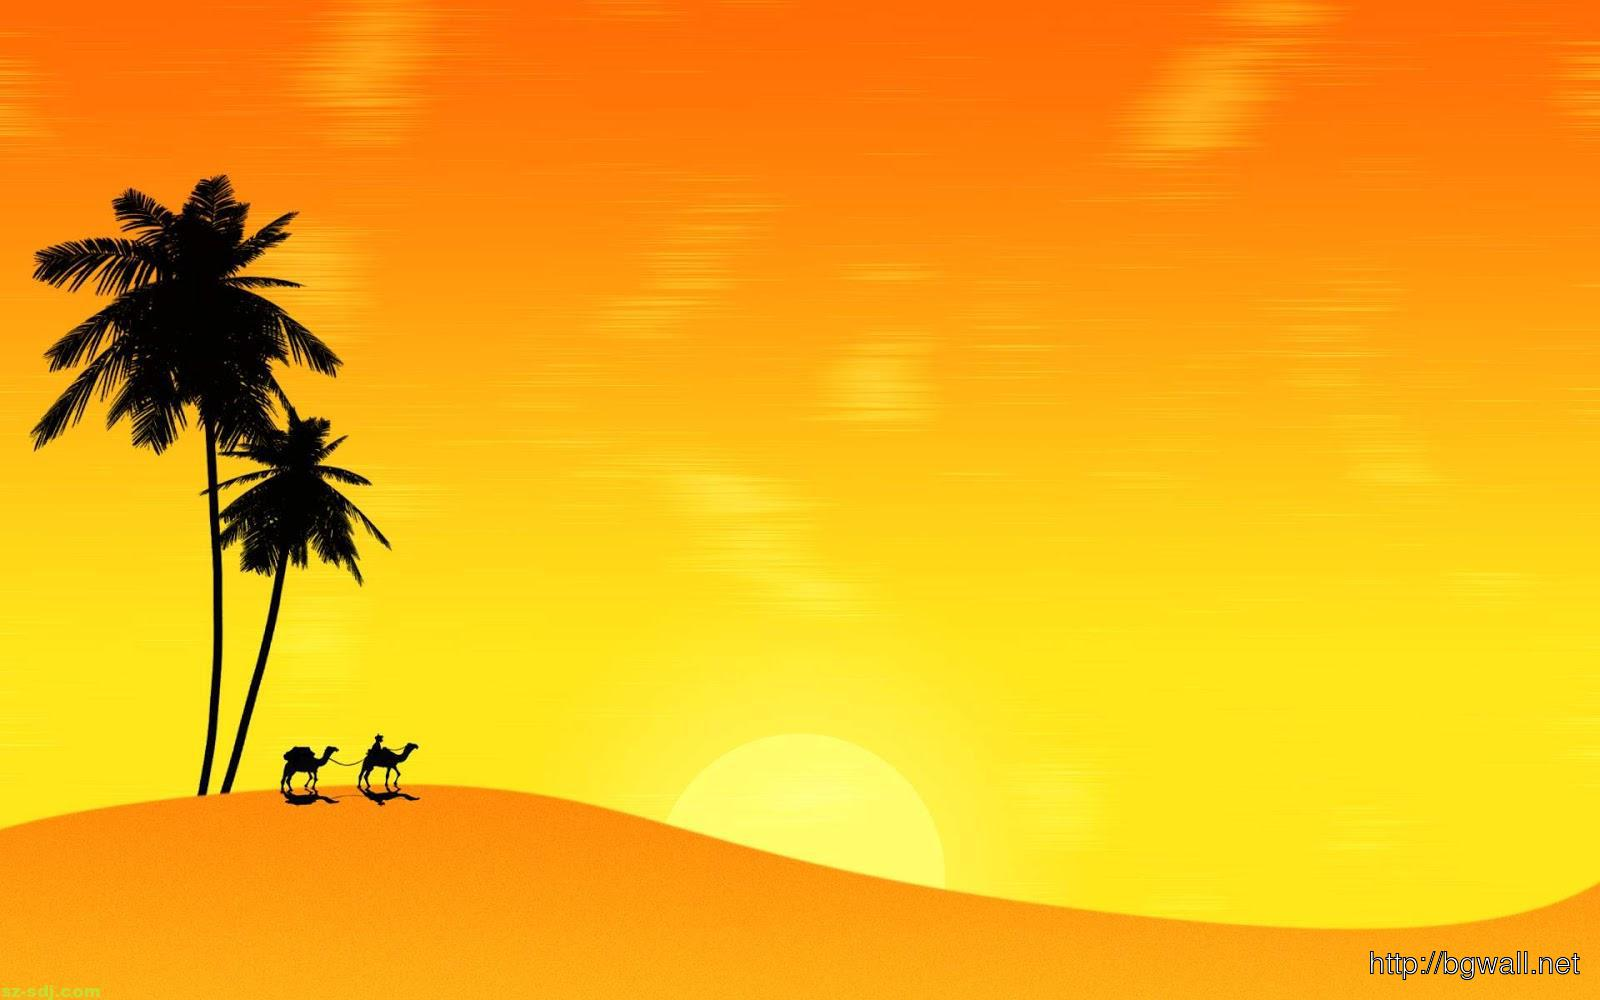 camel-with-yellow-background-wallpaper-